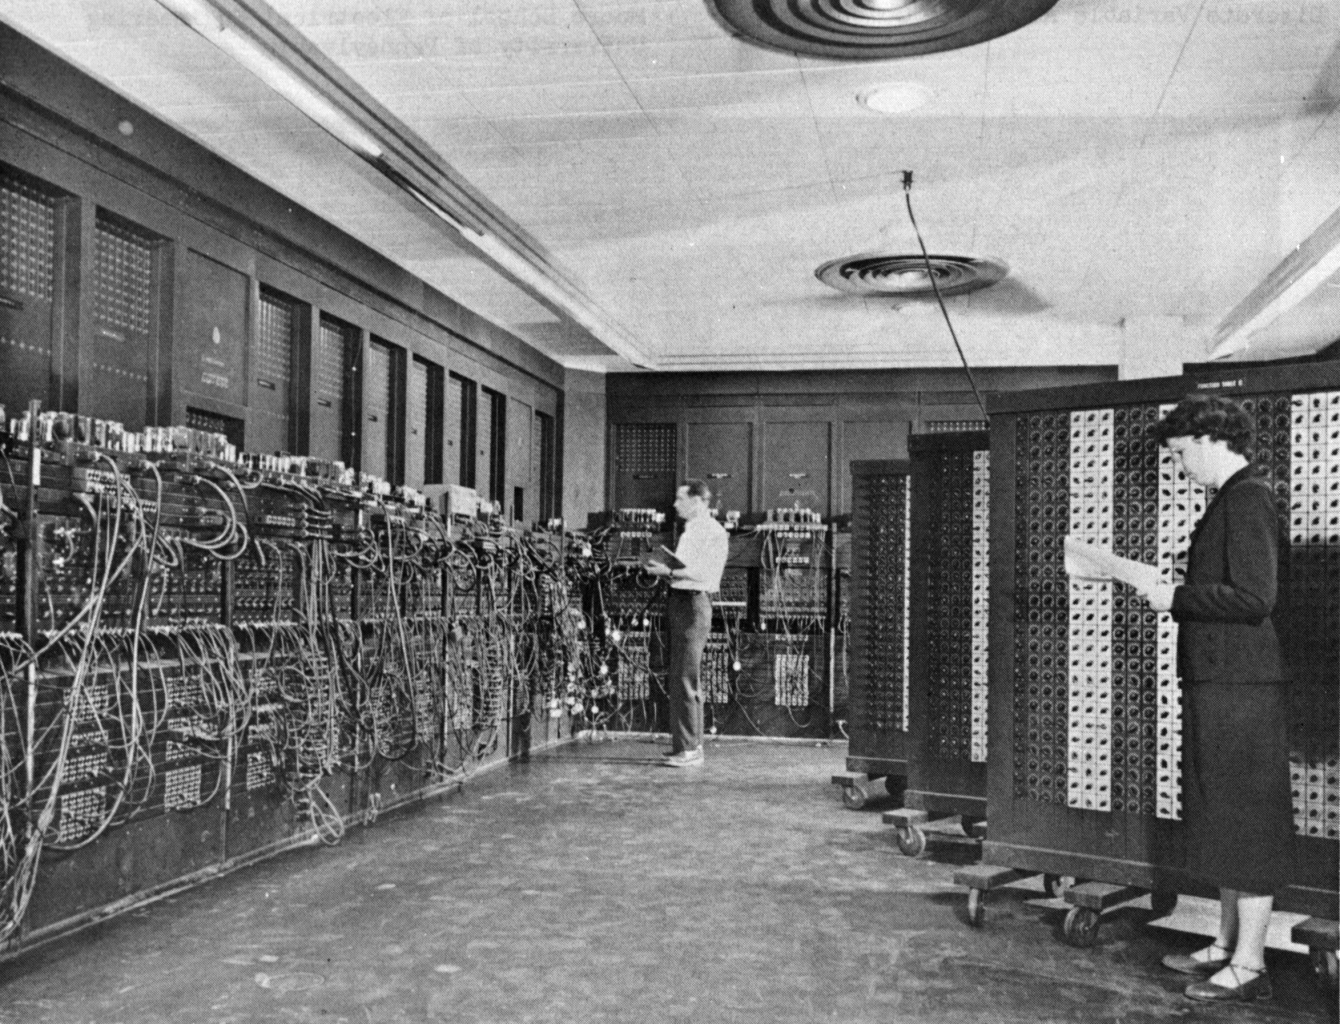 ENIAC, the first computer. We've come a long way since then, with powerful computers now able to fit inside our pockets.   Wikimedia Commons  (public domain)